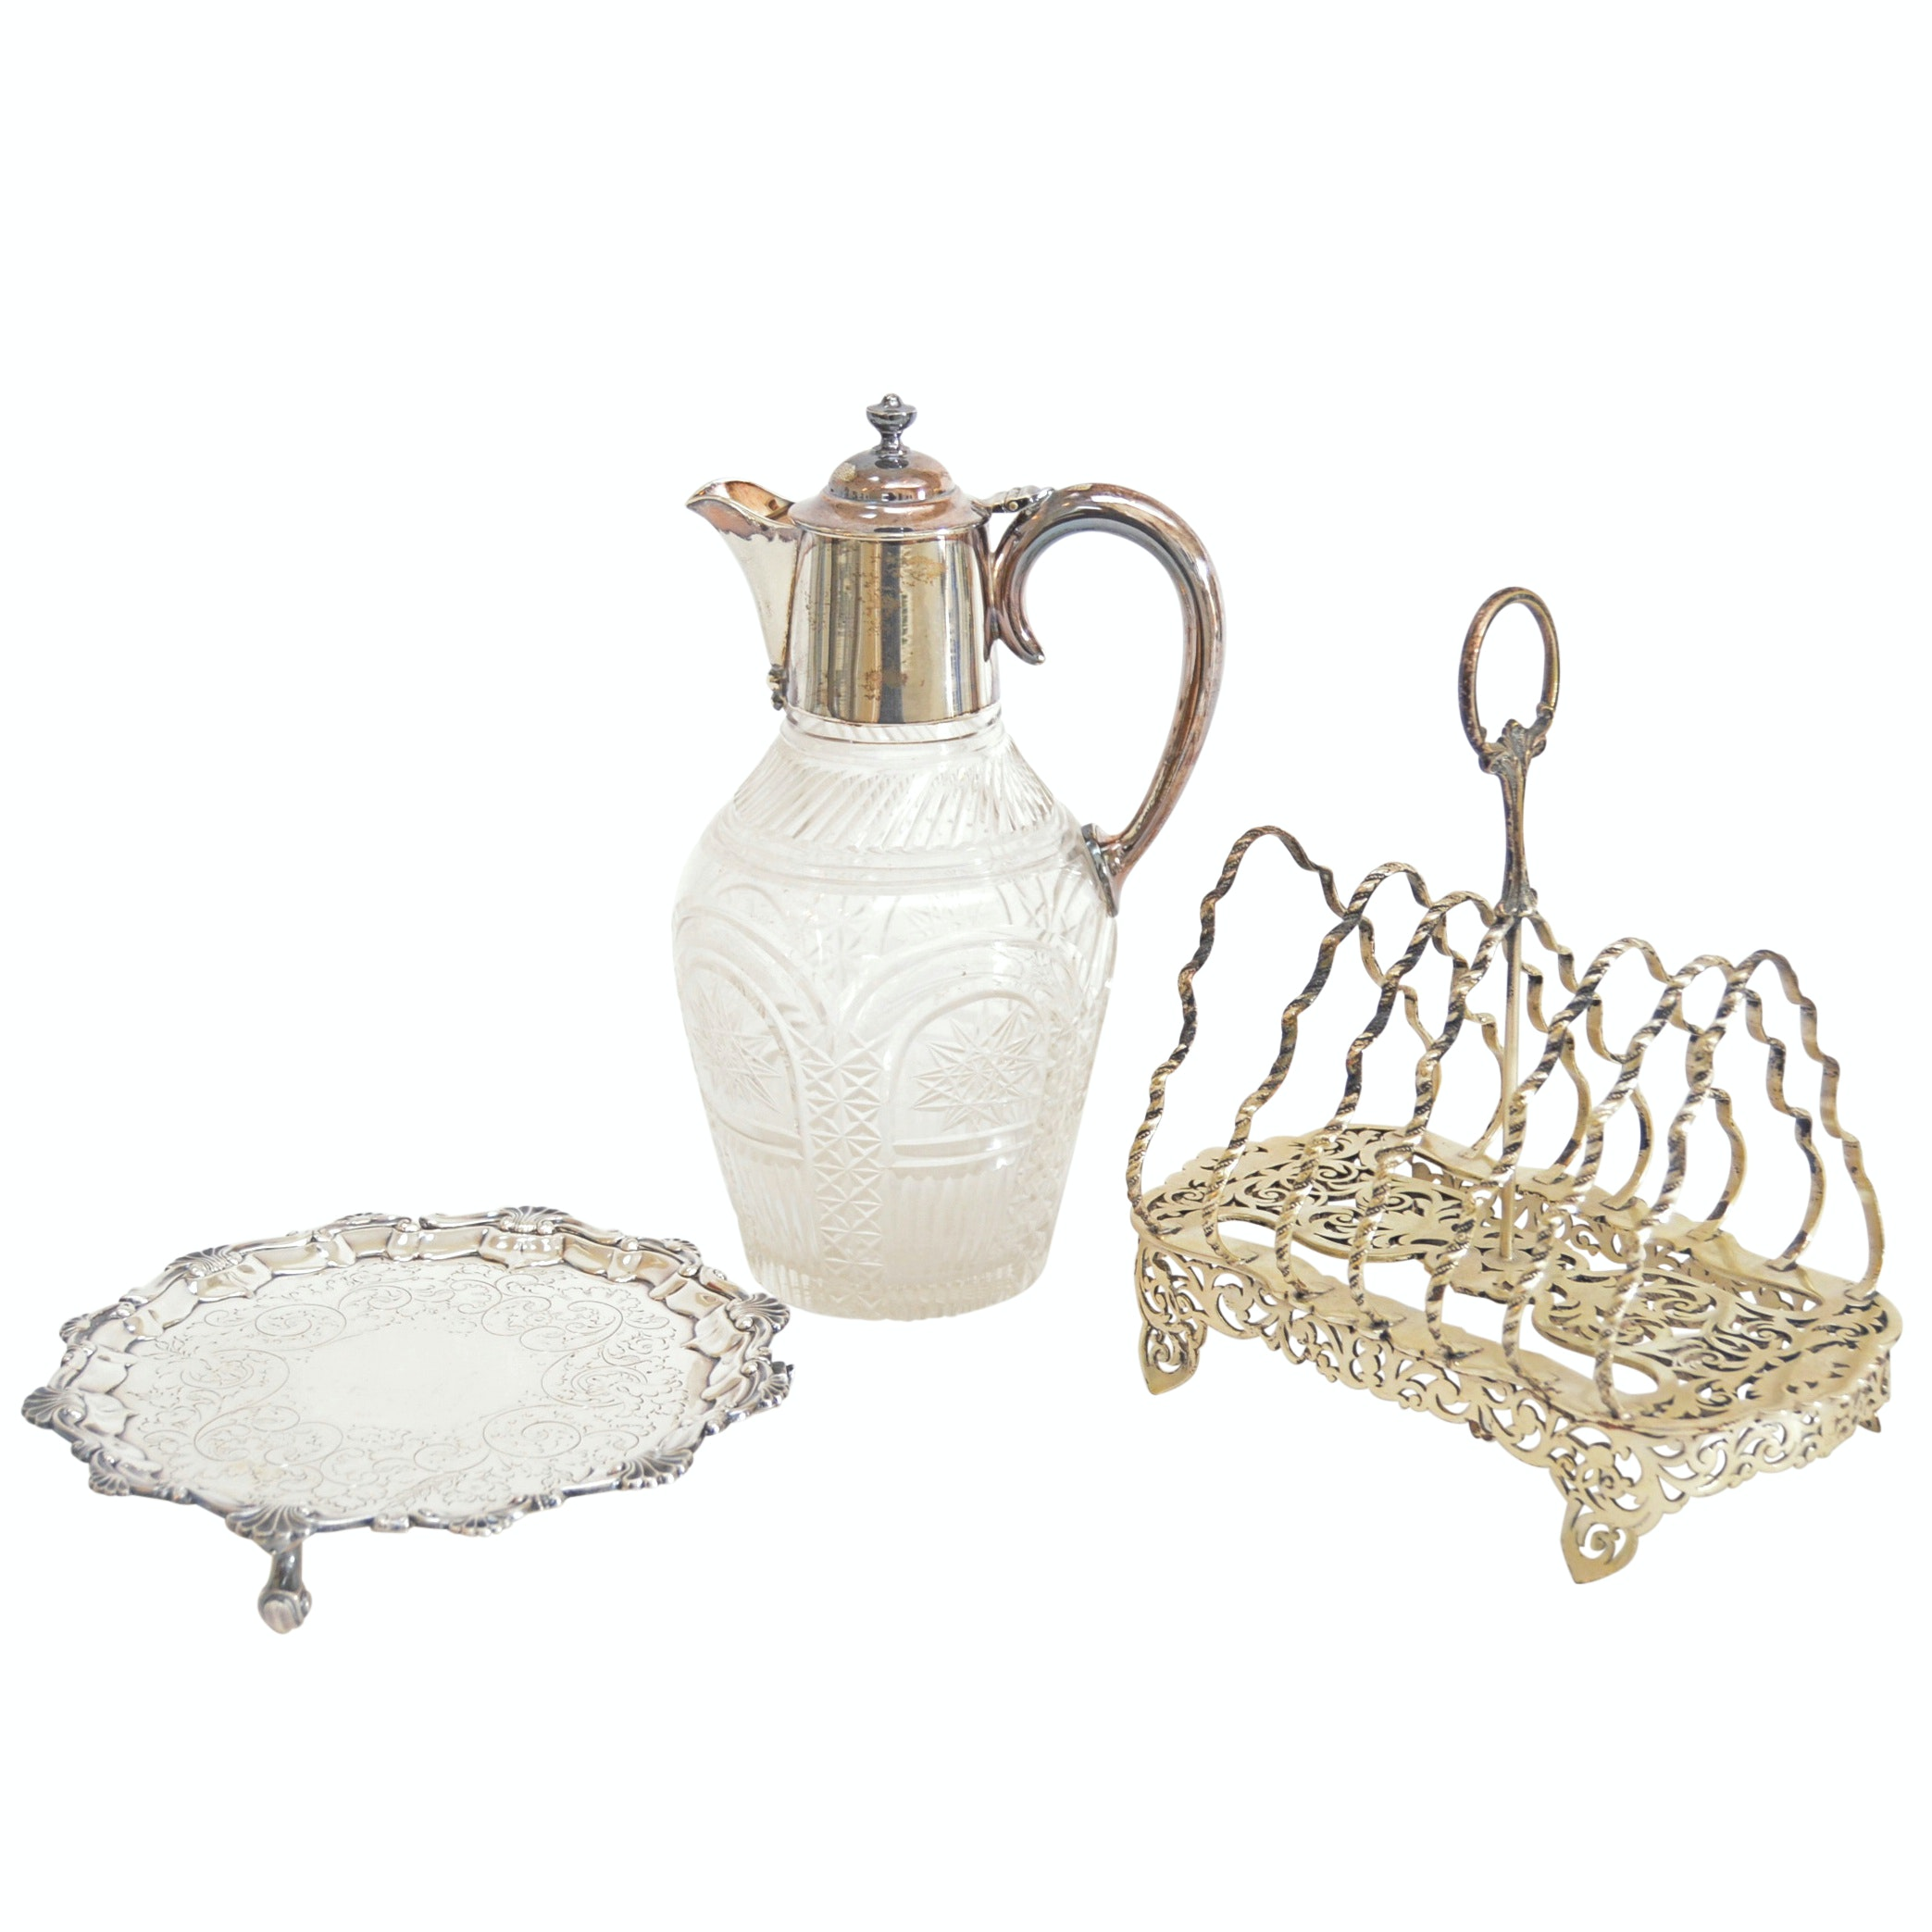 Silverplate Serveware with Barker Bros. Tray, Henry Wilkinson Pitcher